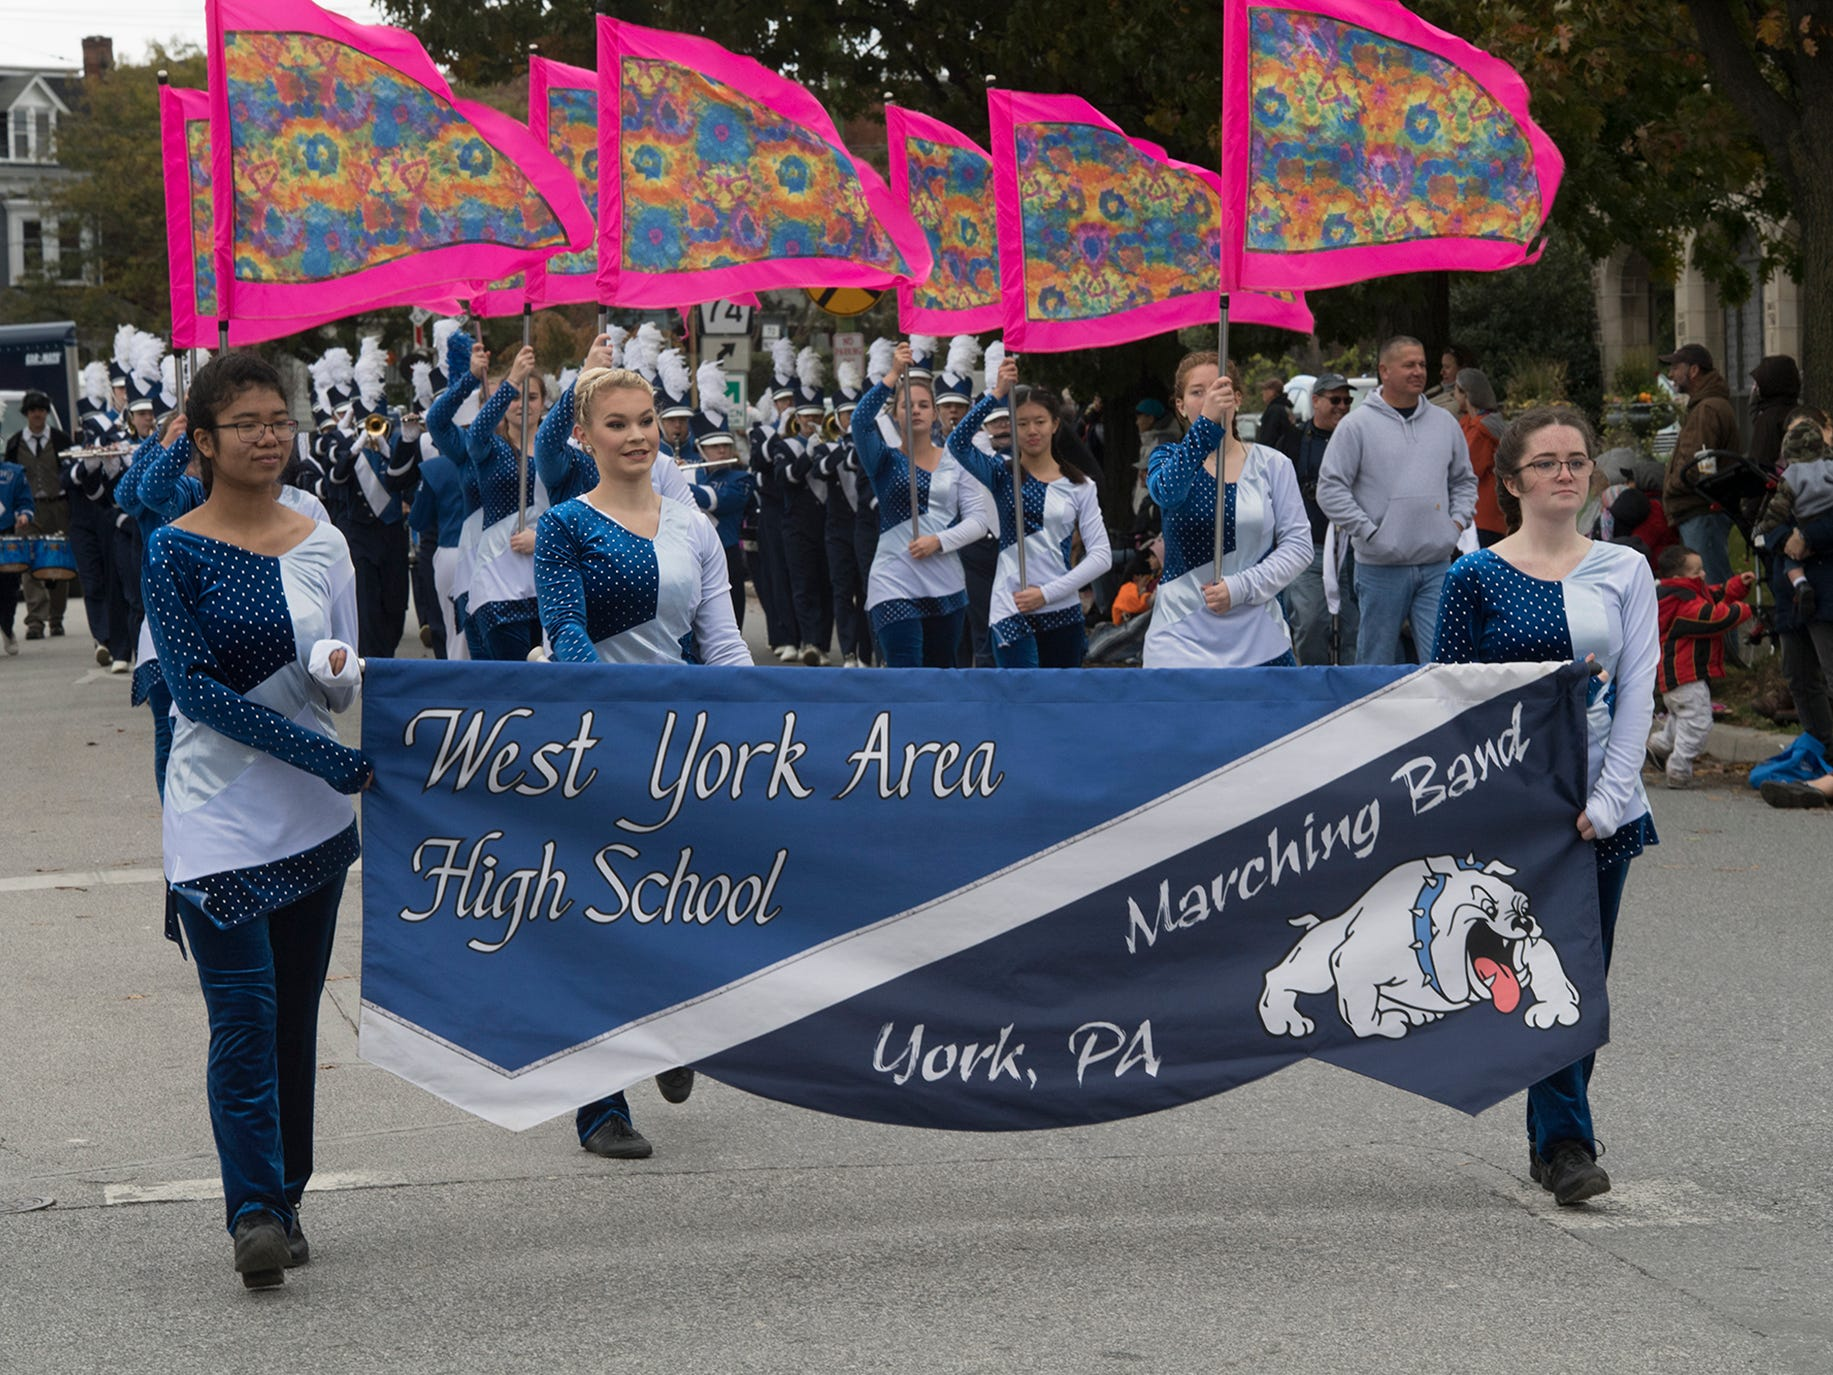 West York Area High School during the 69th Annual York Halloween Parade.